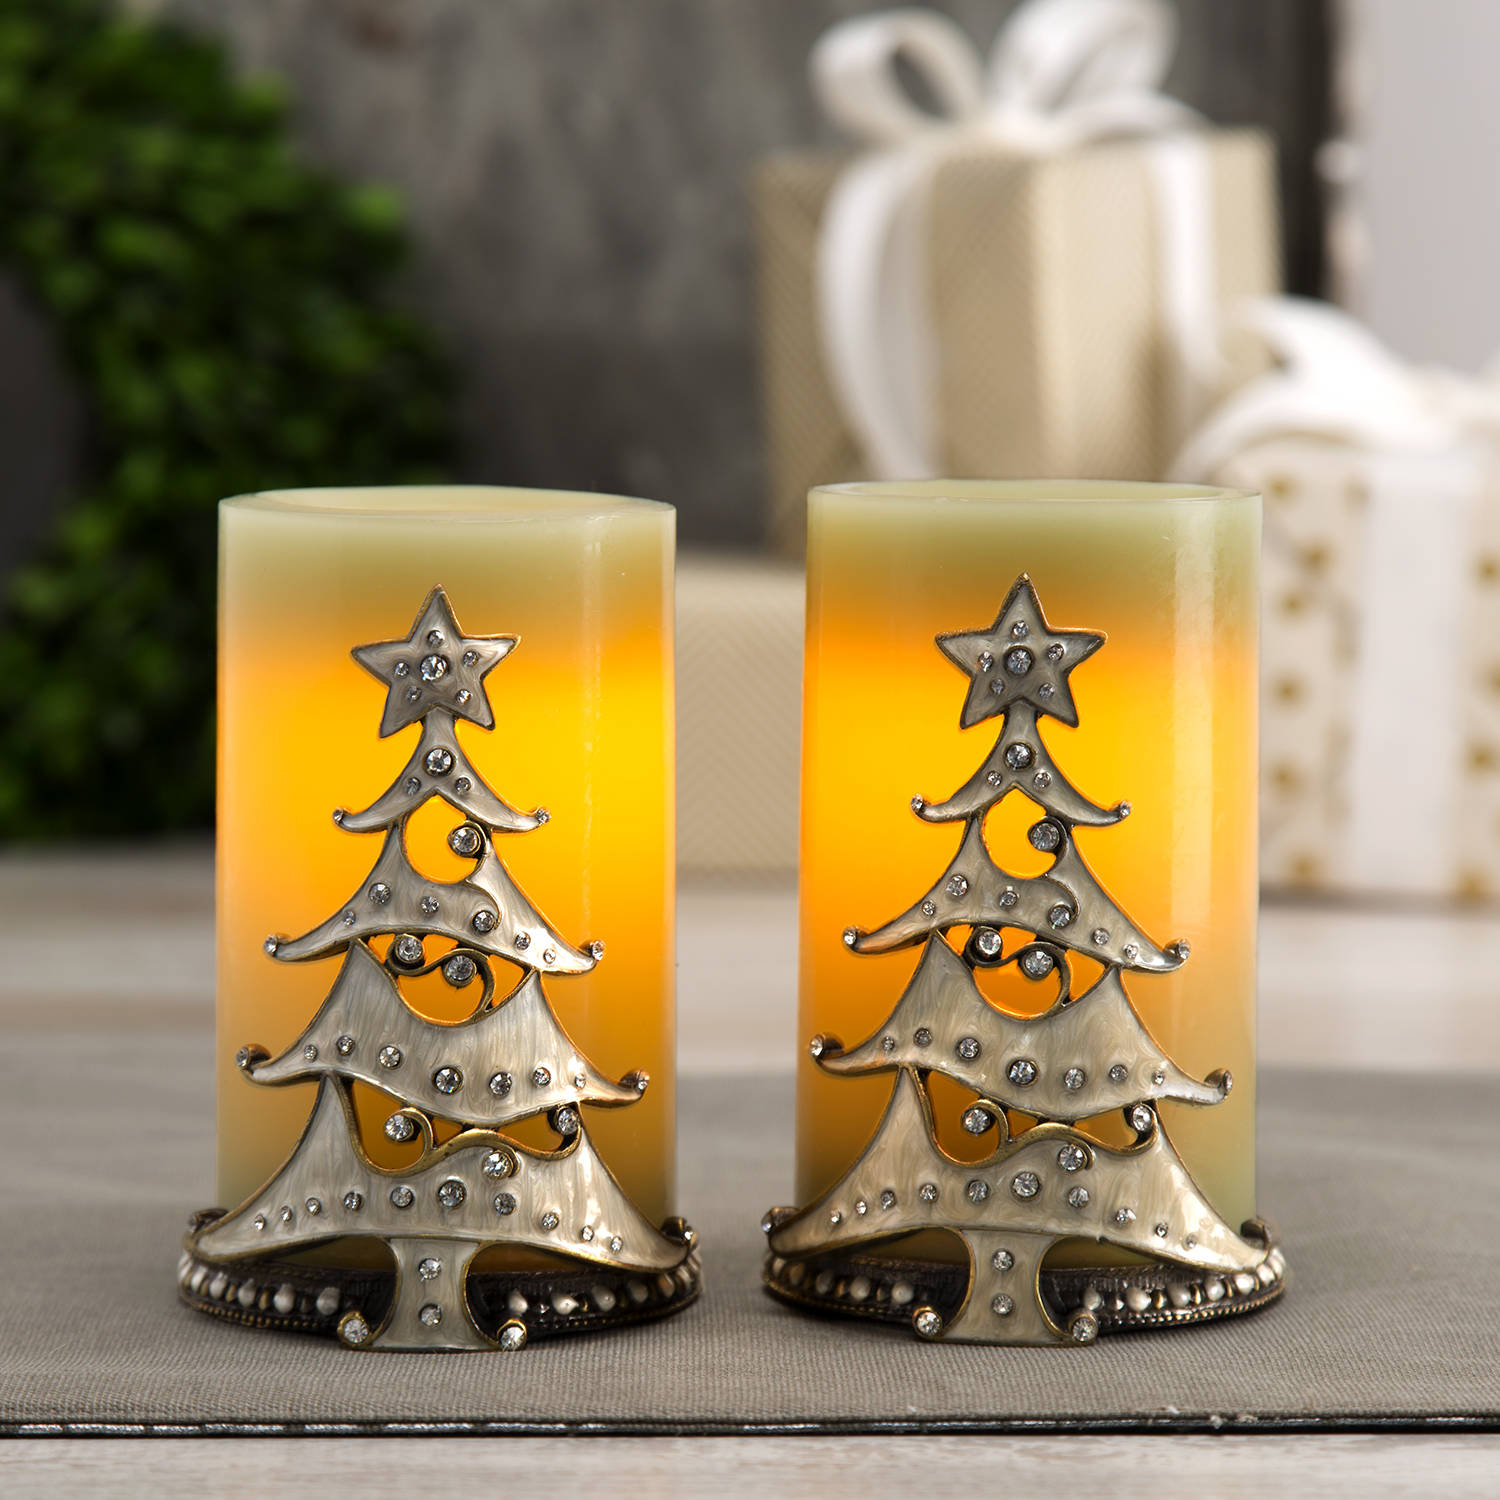 Lit Decor Flameless Candles Pillars White Christmas Decorative Holder And